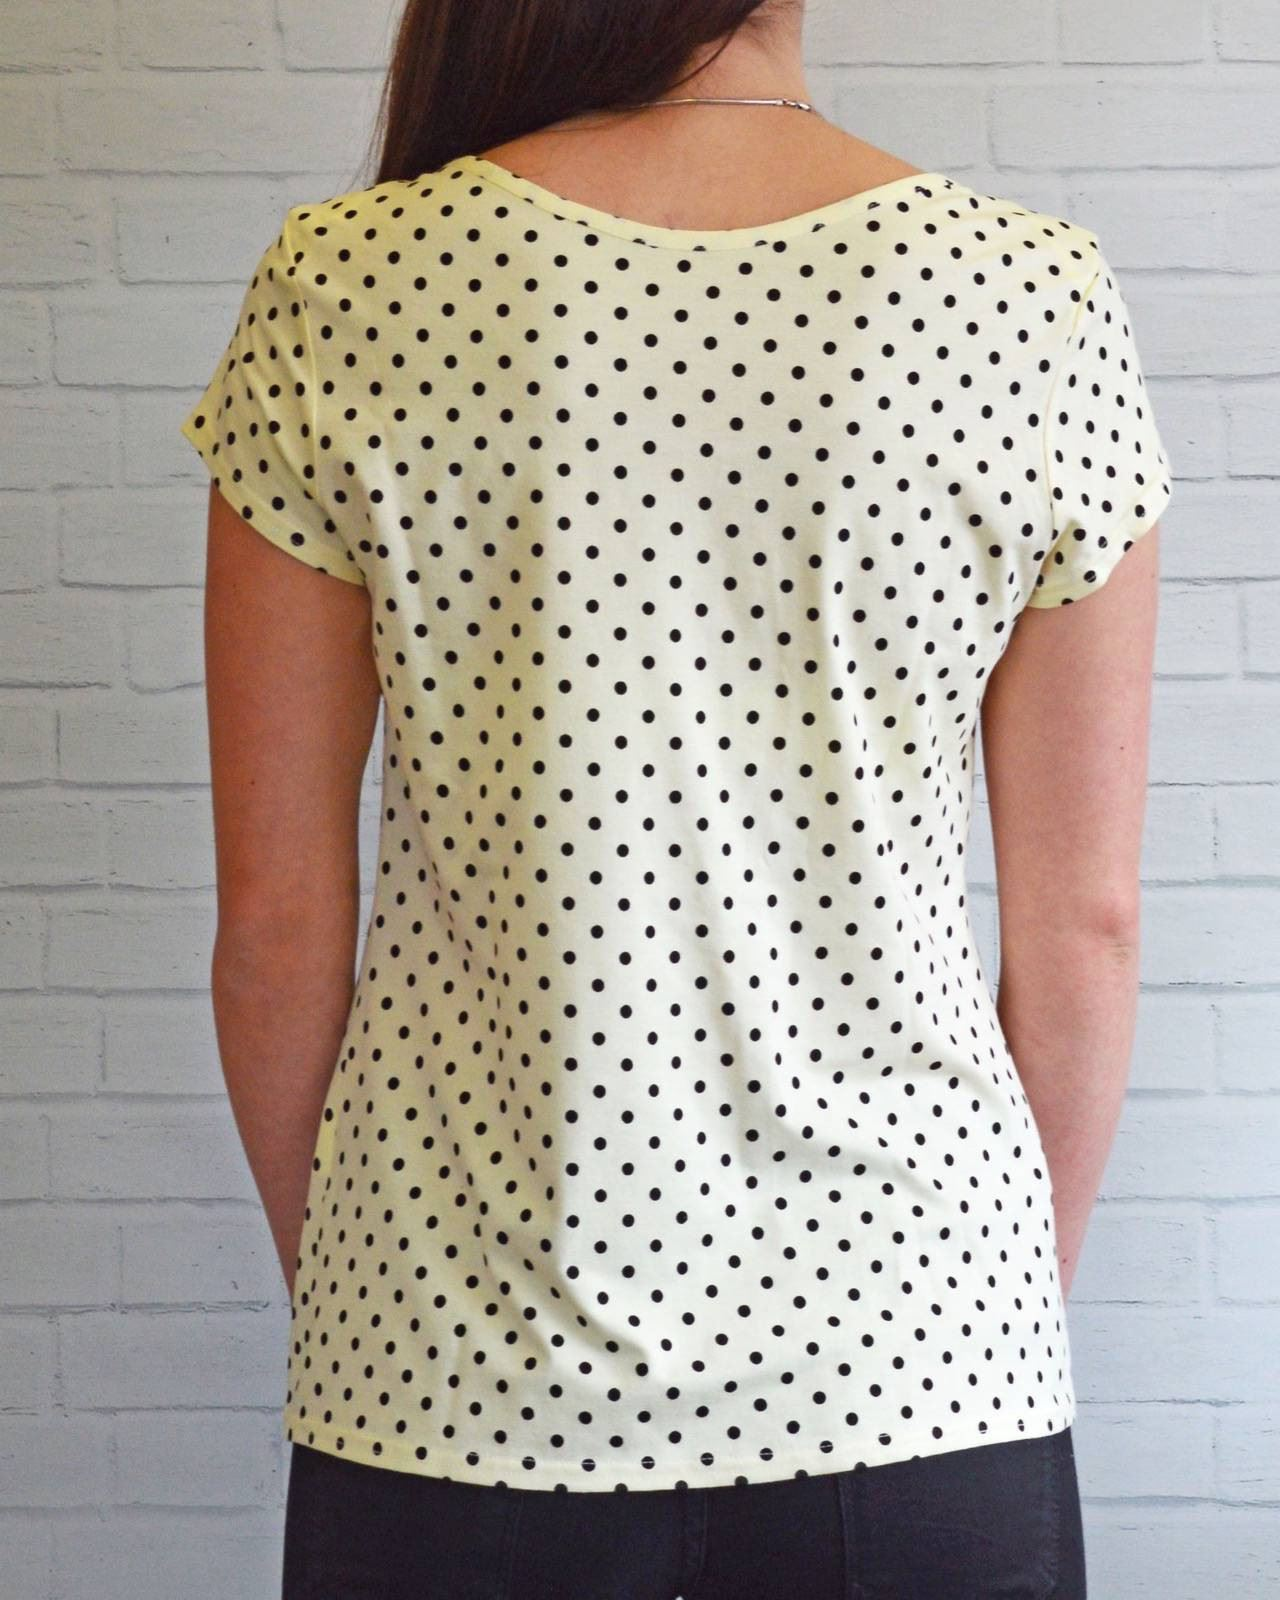 KALIKO-Pastel-Spotted-Jersey-T-Shirt-Top-in-Pink-or-Yellow-Polka-Dot